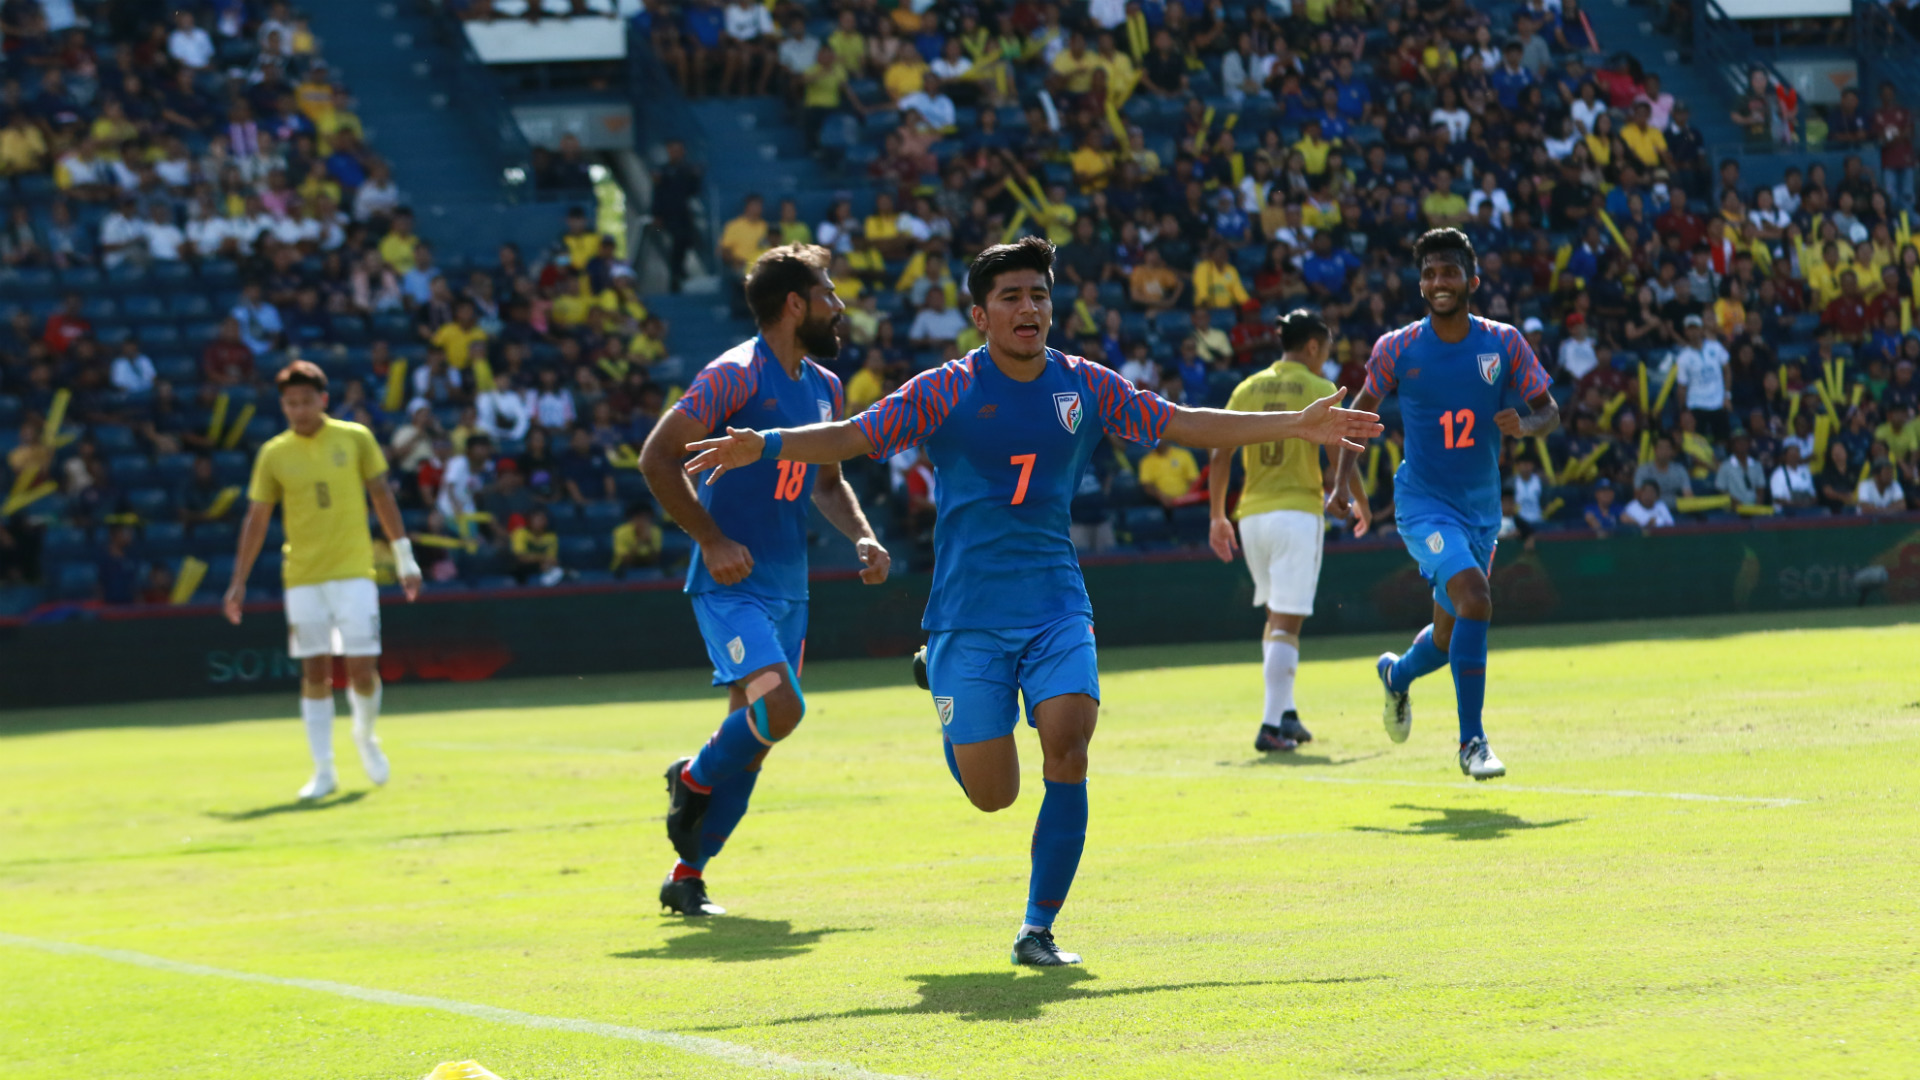 Anirudh Thapa: AIFF's elite academy has shaped my life